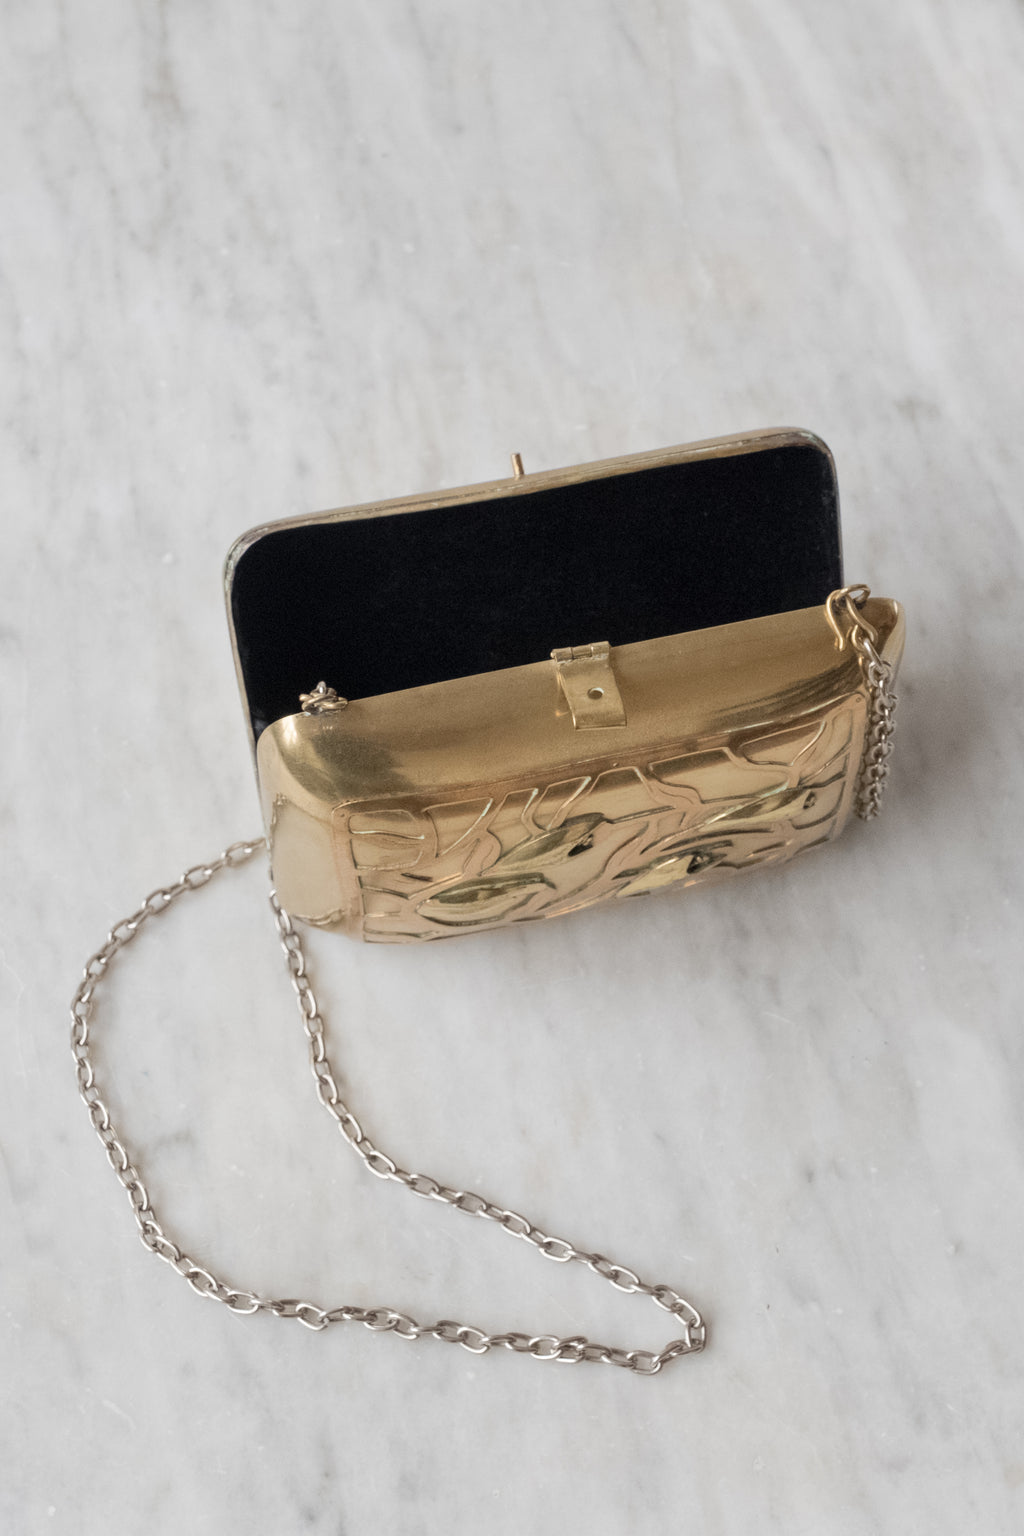 Vintage Art Nouveau Brass Purse